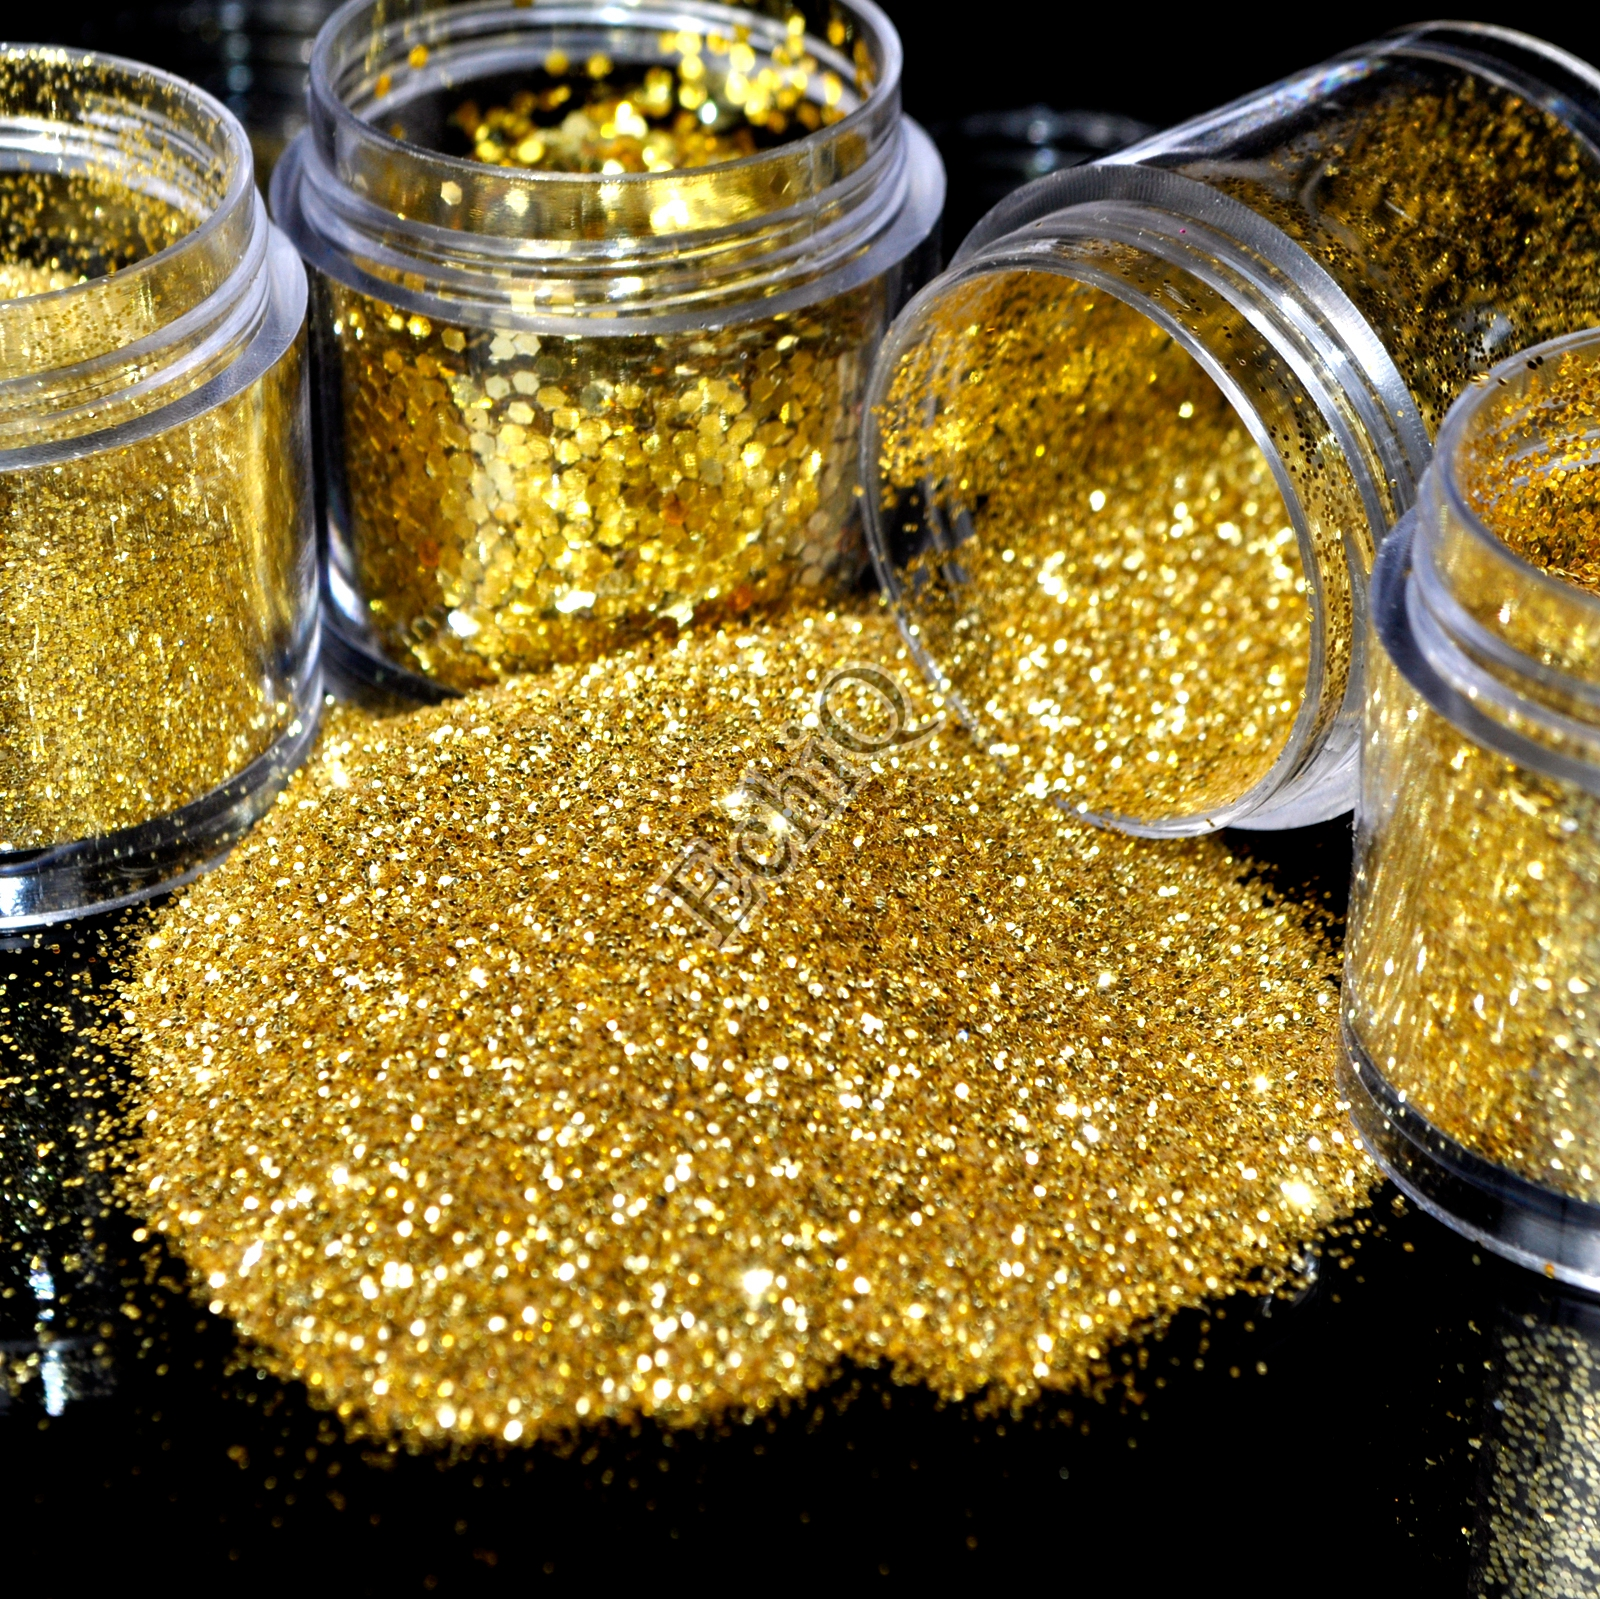 1 Box Pure Gold Hexagon Nail Glitter Powder Sequins 3D Nail Art Decoration 4 Different Size Acrylic DIY Nails Tools mioblet 2g box mirror effect nail glitter powder shiny rose gold purple mirror chrome powder dust nails art pigment diy manicure